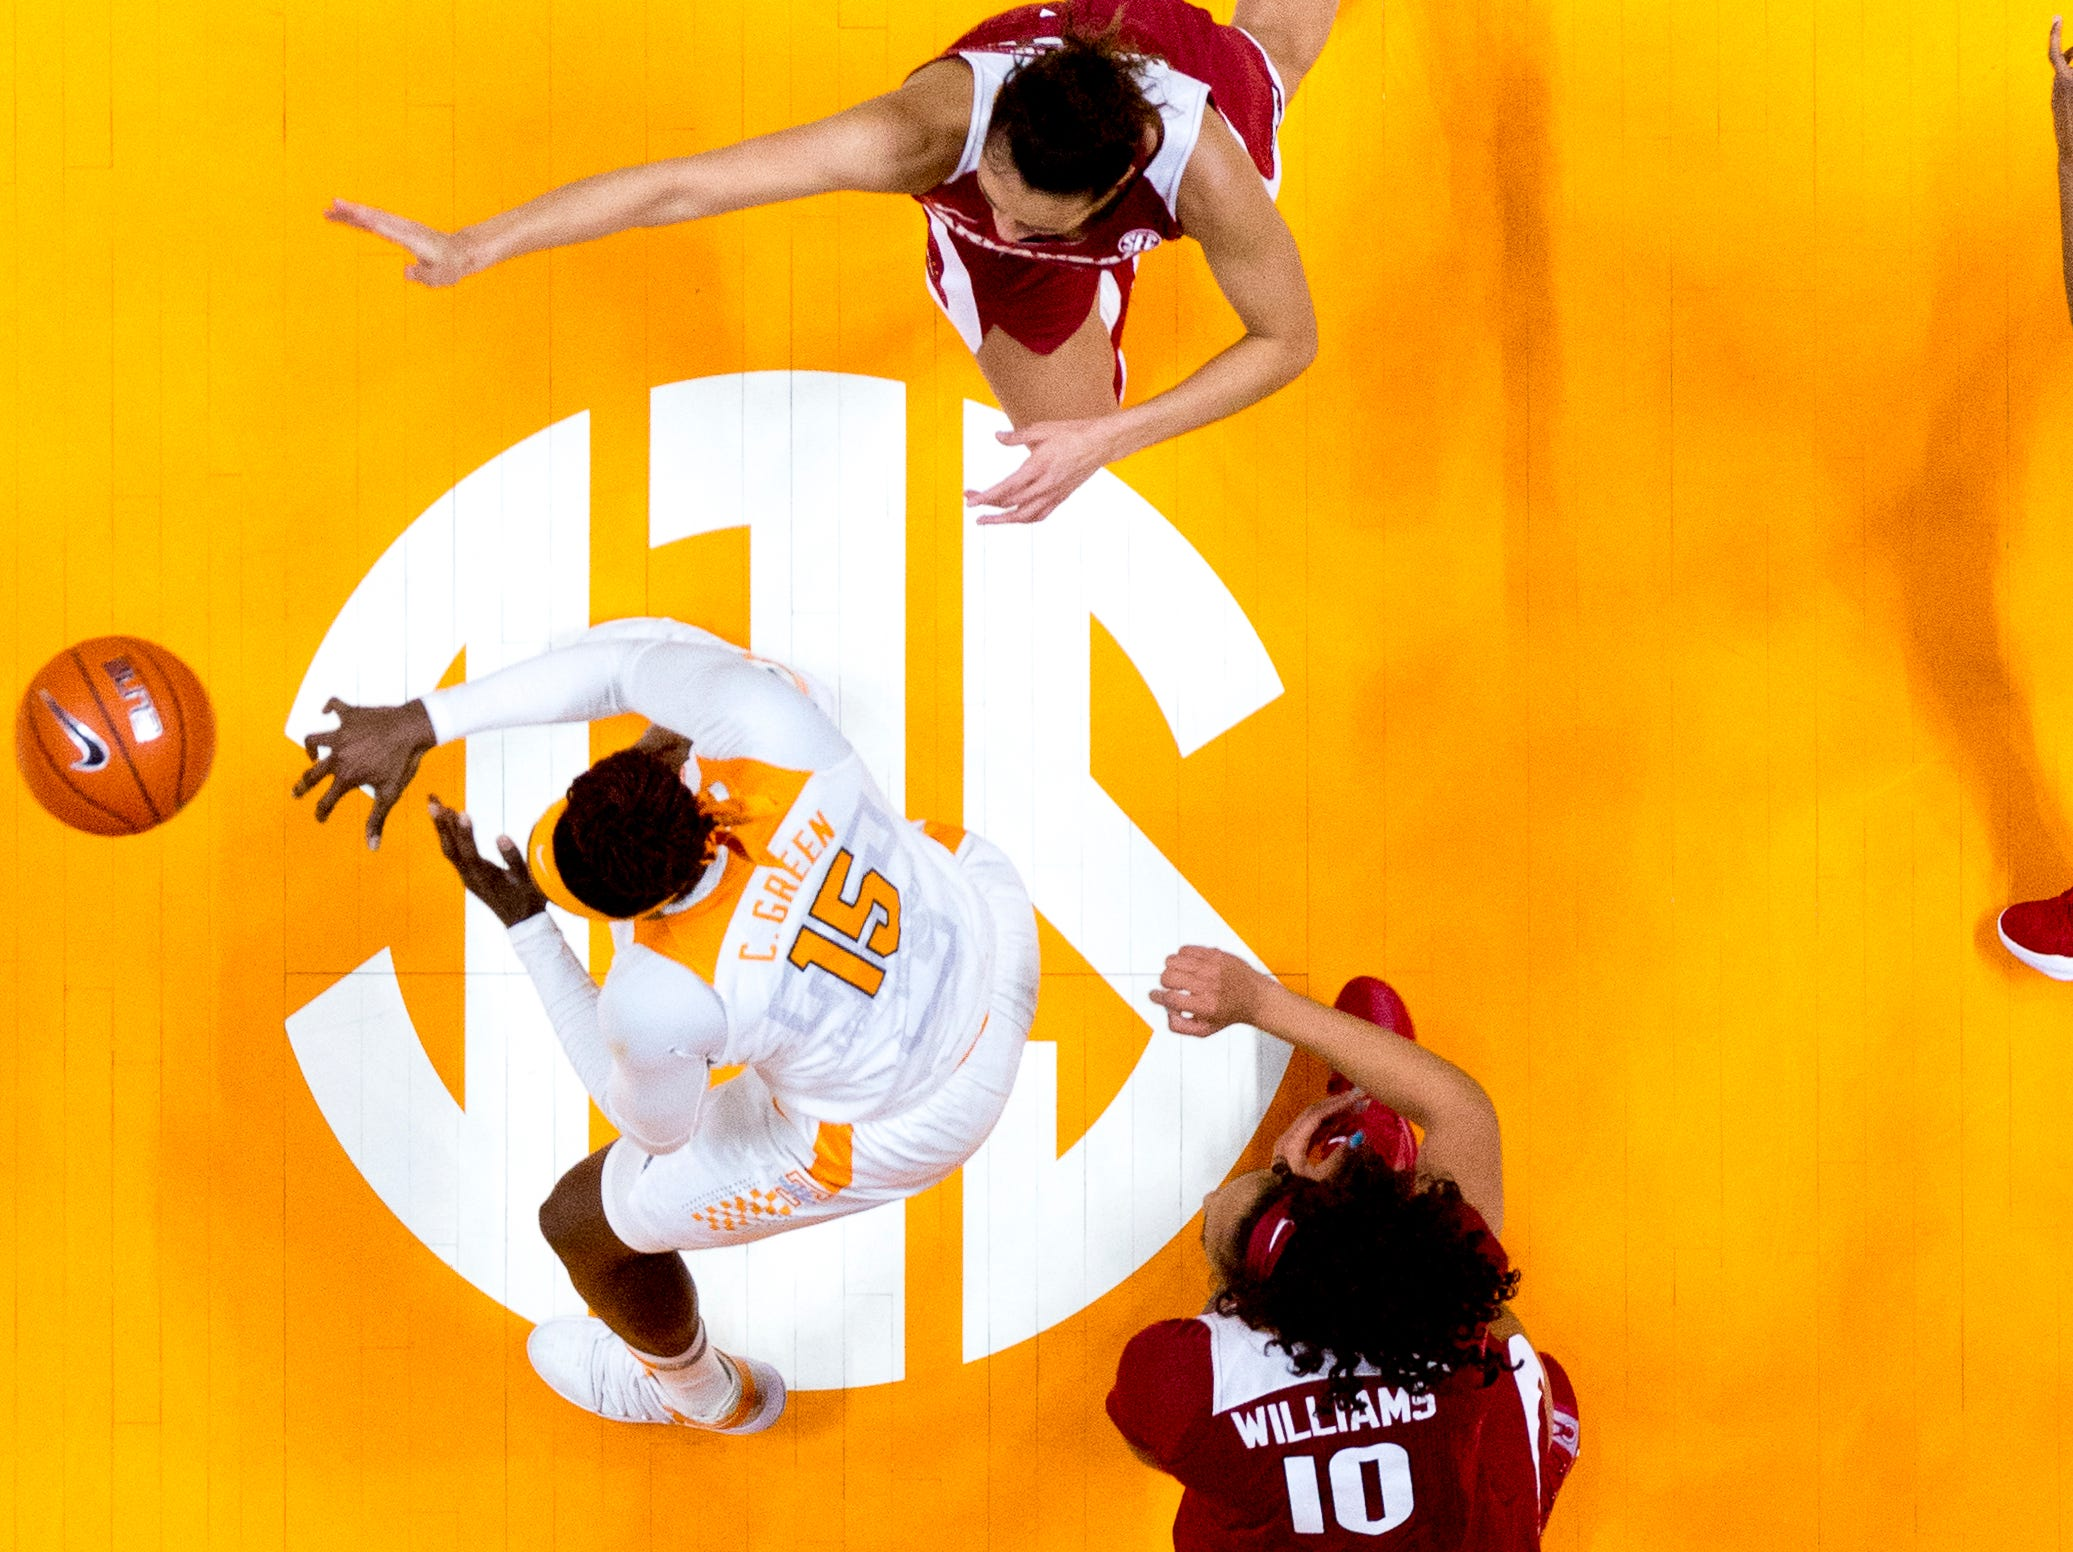 Tennessee forward Cheridene Green (15) goes for the ball during a game between Tennessee and Arkansas at Thompson-Boling Arena in Knoxville, Tennessee on Monday, January 21, 2019.